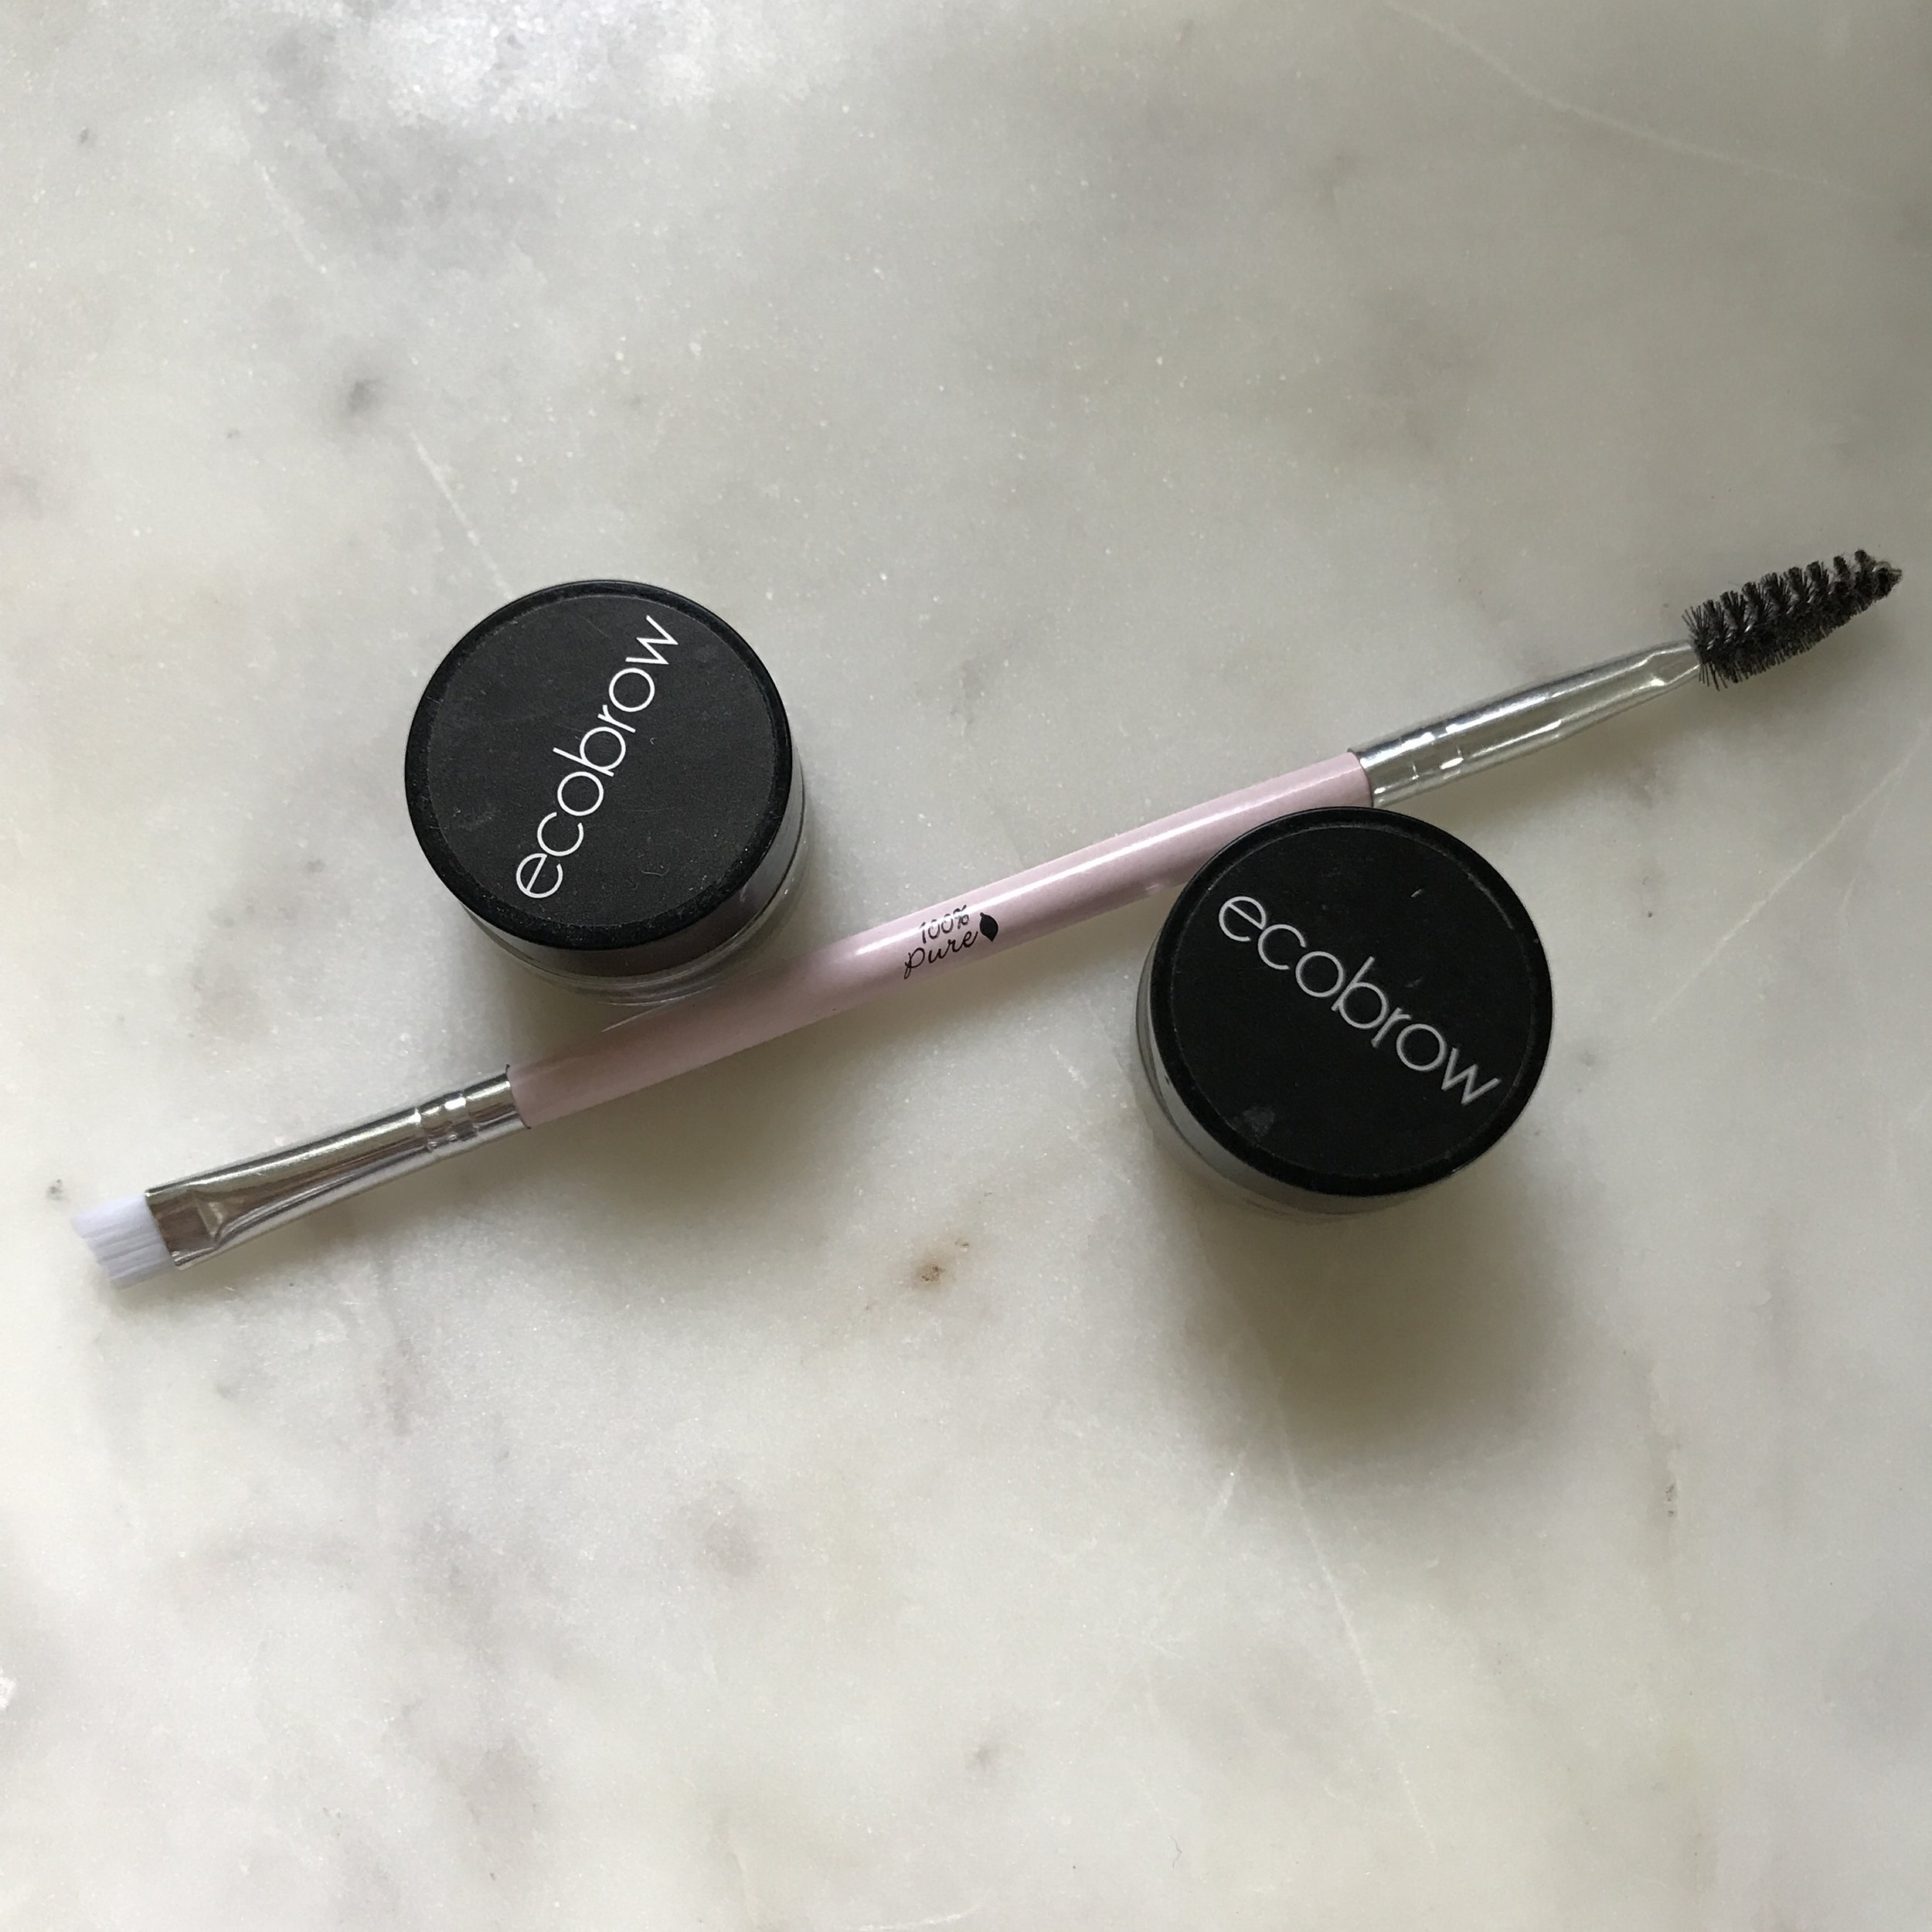 I apply EcoBrow with a thin angled brush like this one from 100% Pure.